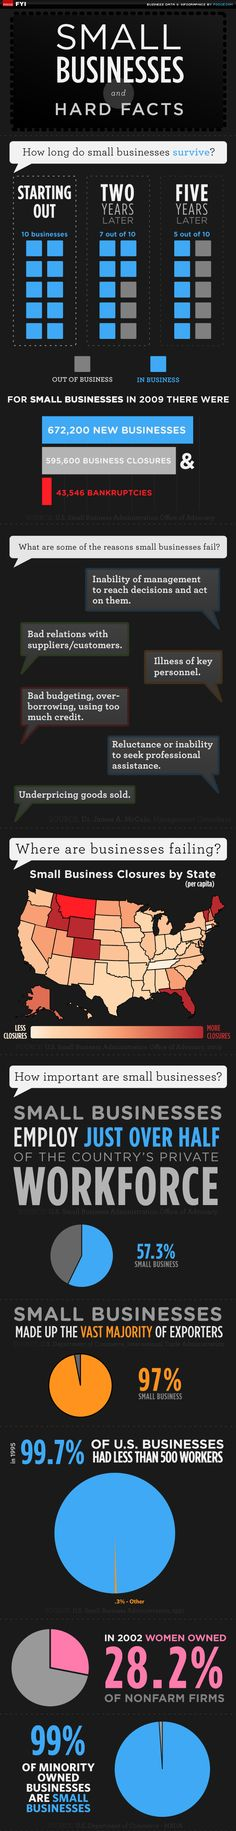 Small Business and Hard Facts Infographic  - Want To Make Your First Dollar Online? DollarCreator.com